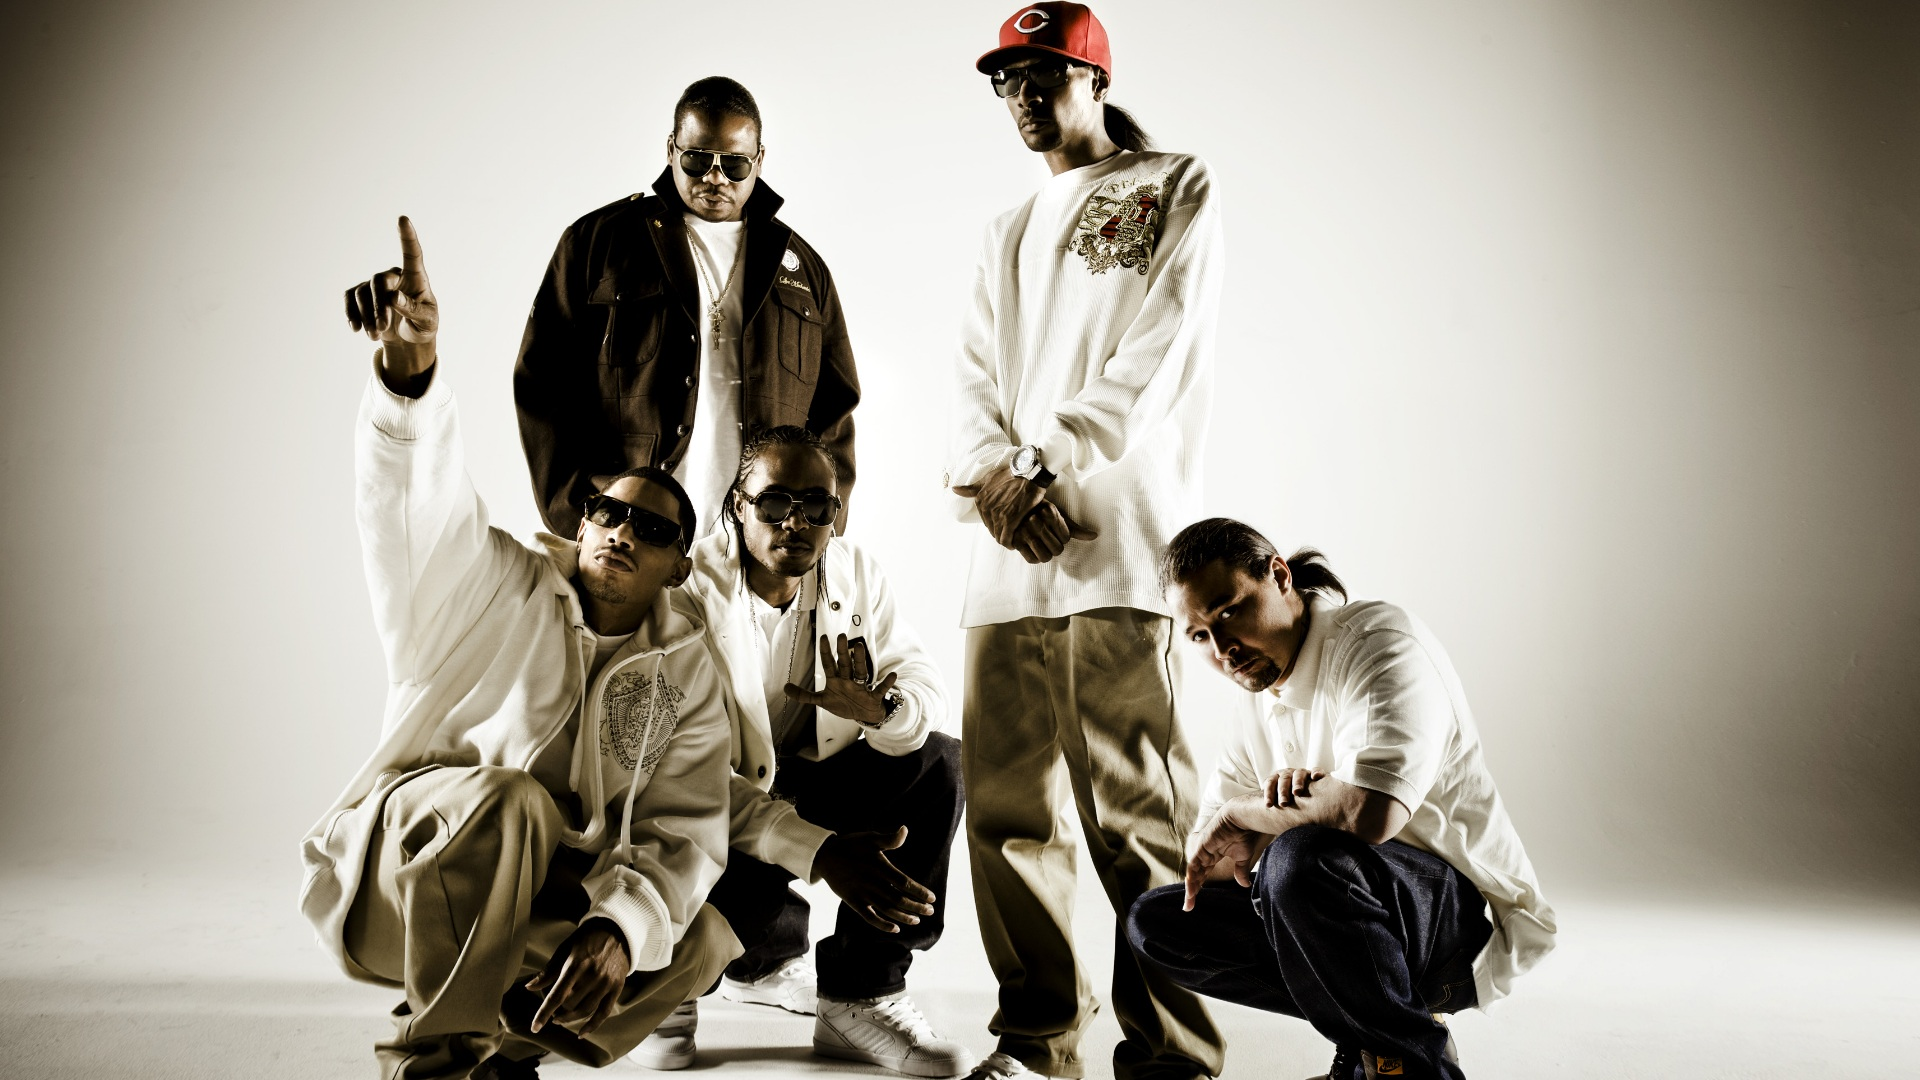 Bone Thugs n Harmony Computer Wallpapers Desktop Backgrounds 1920x1080